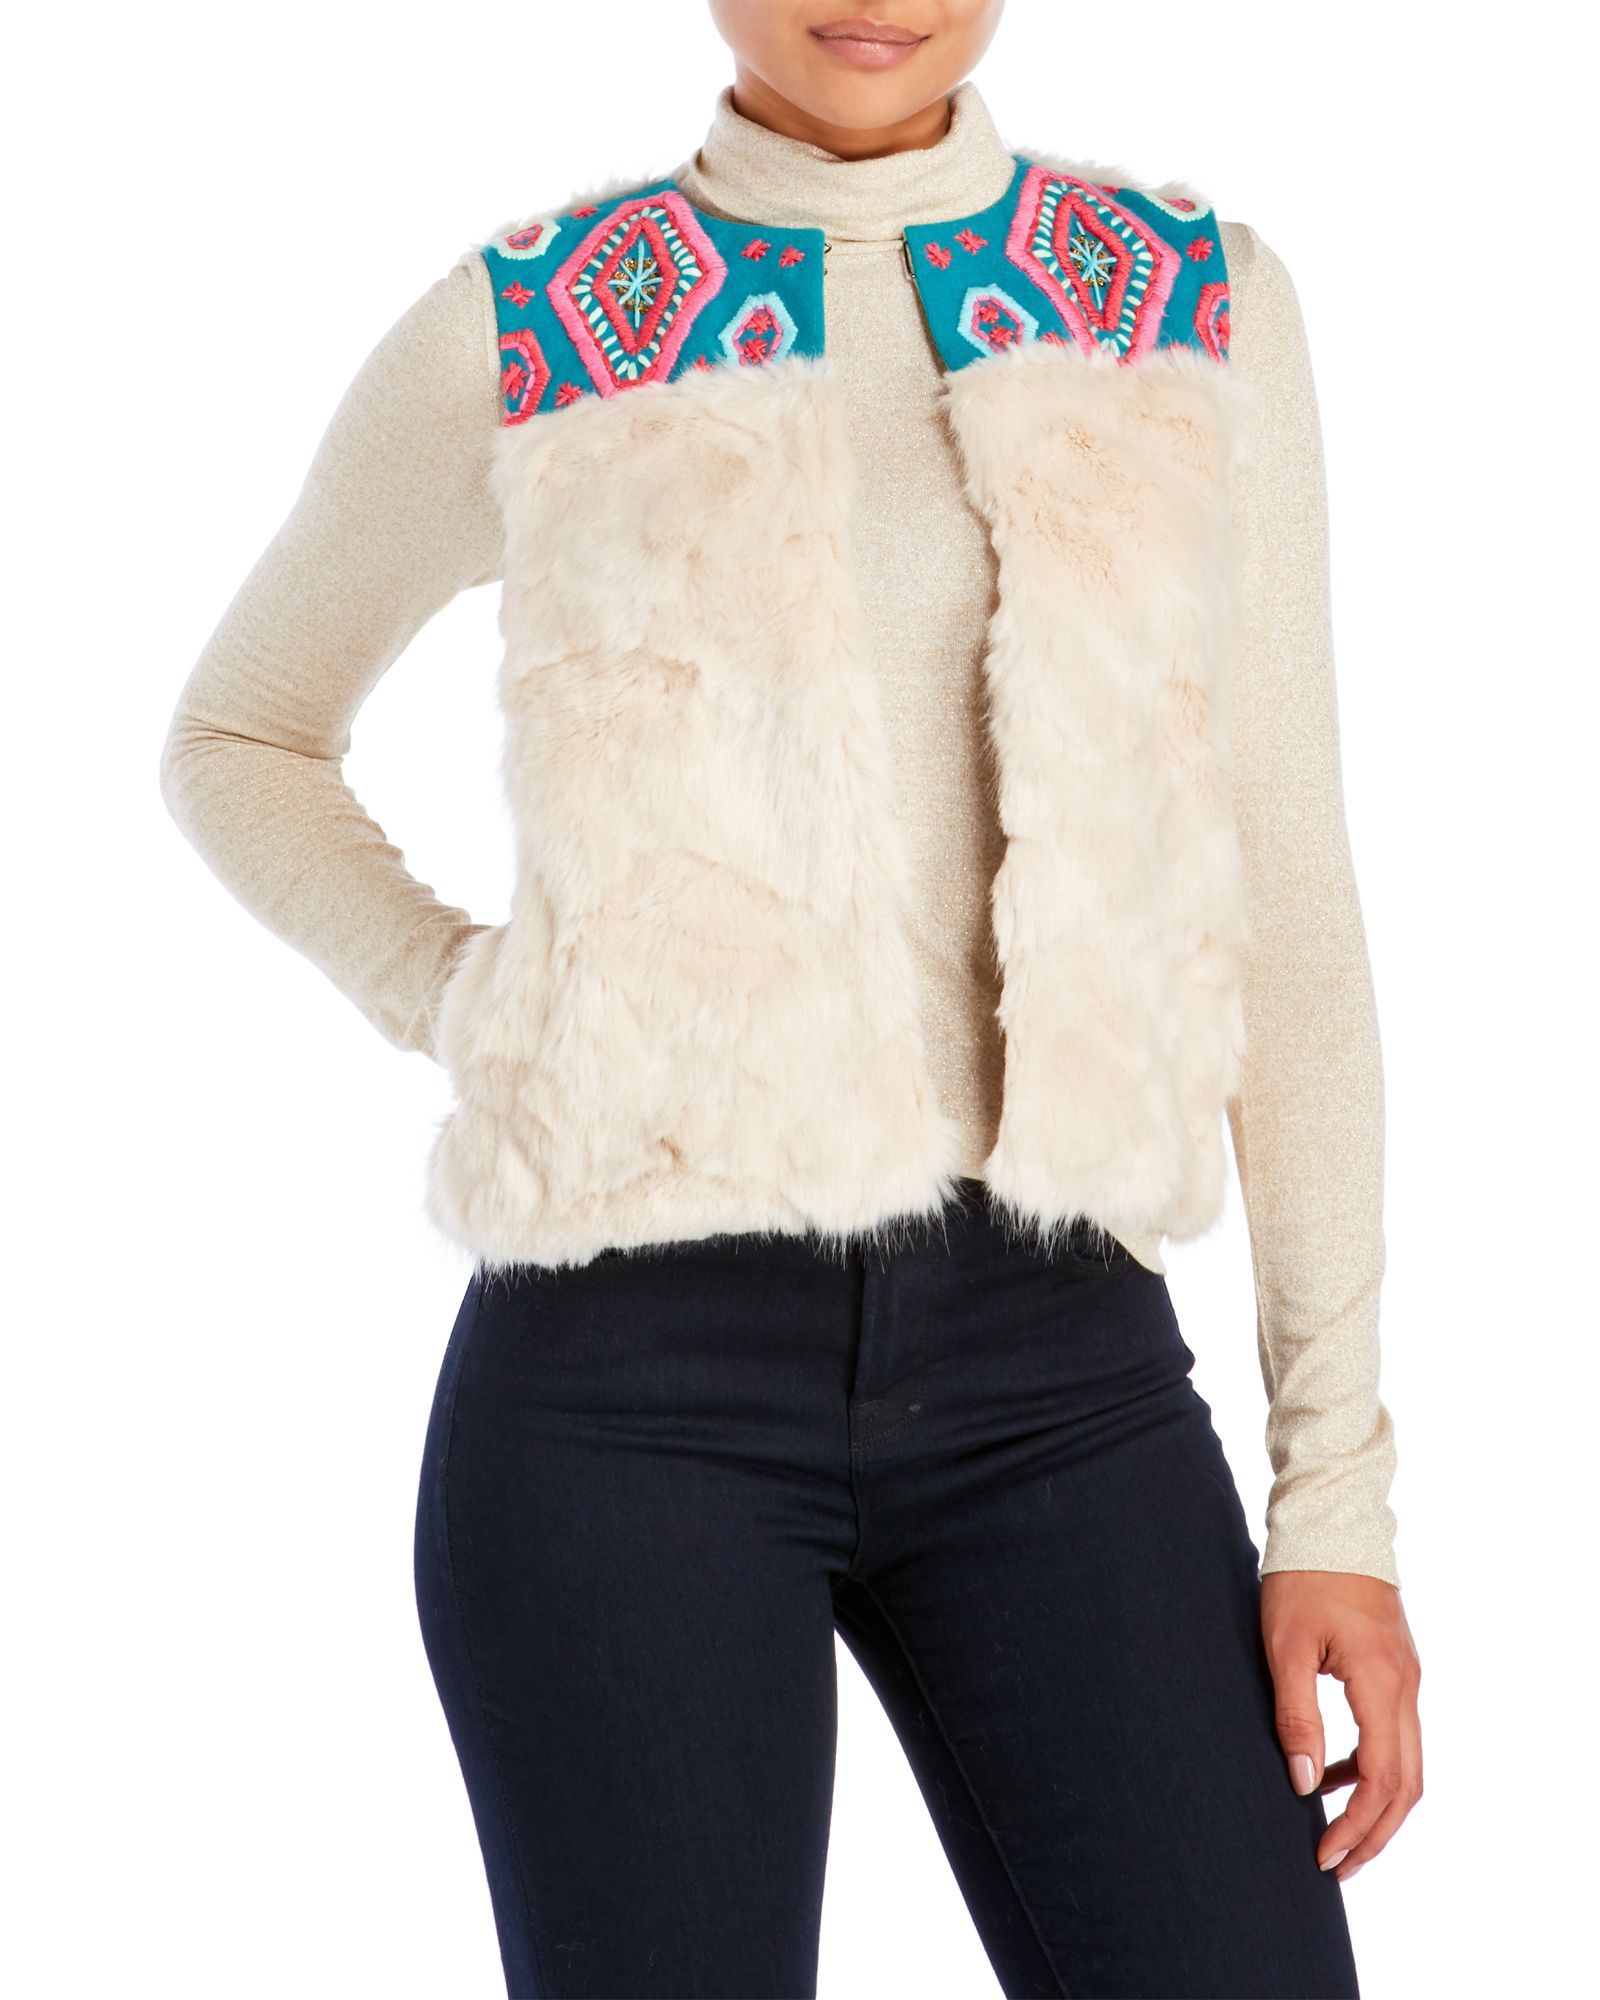 Alphamoment Embroidered Accessories Faux Fur Vestapparelamp; FulcT3JK1